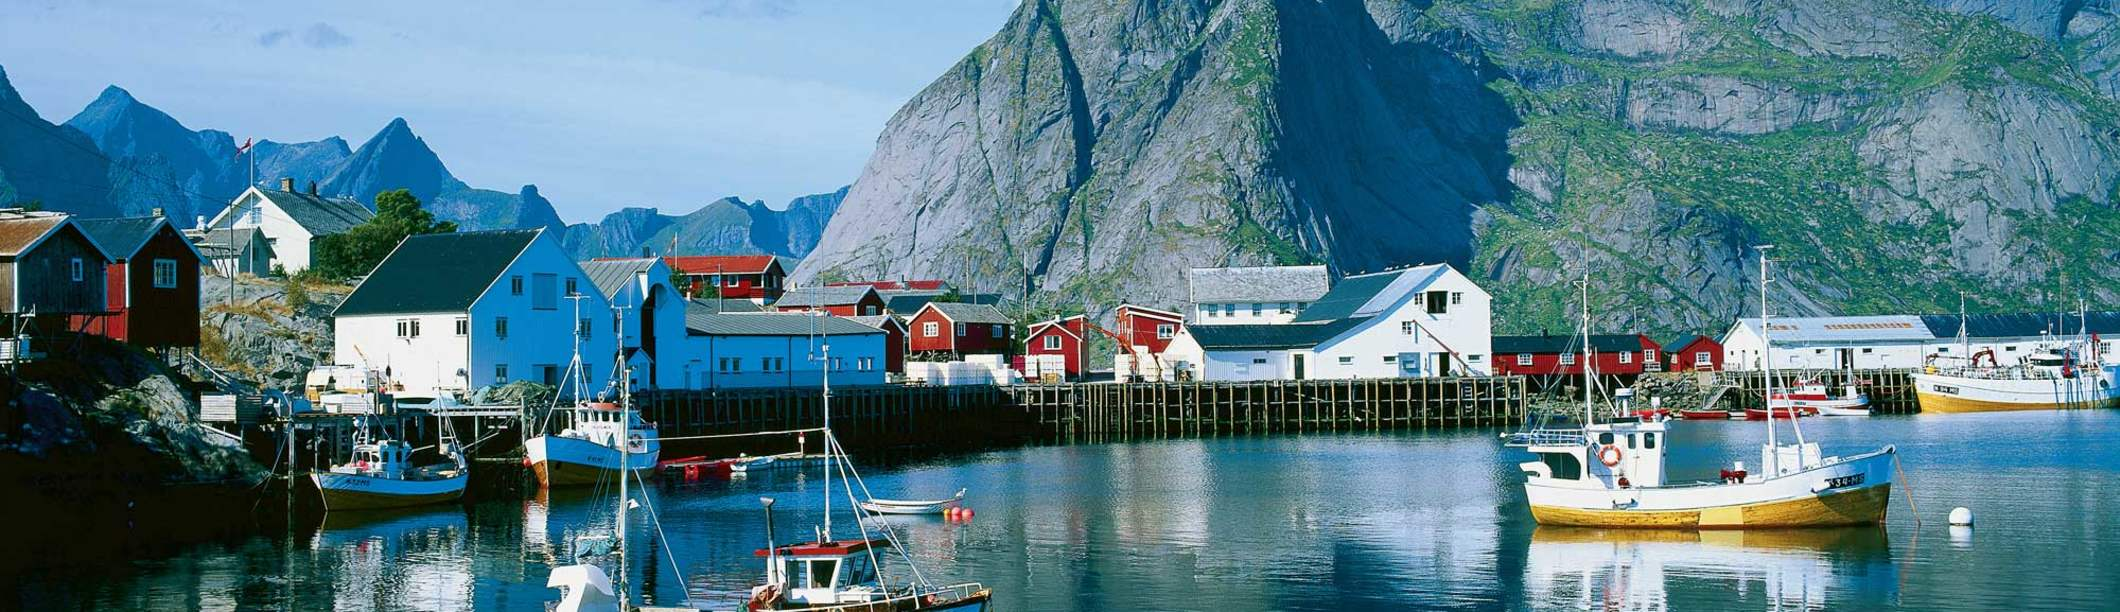 Top 10 places in Norway | Most popular destinations